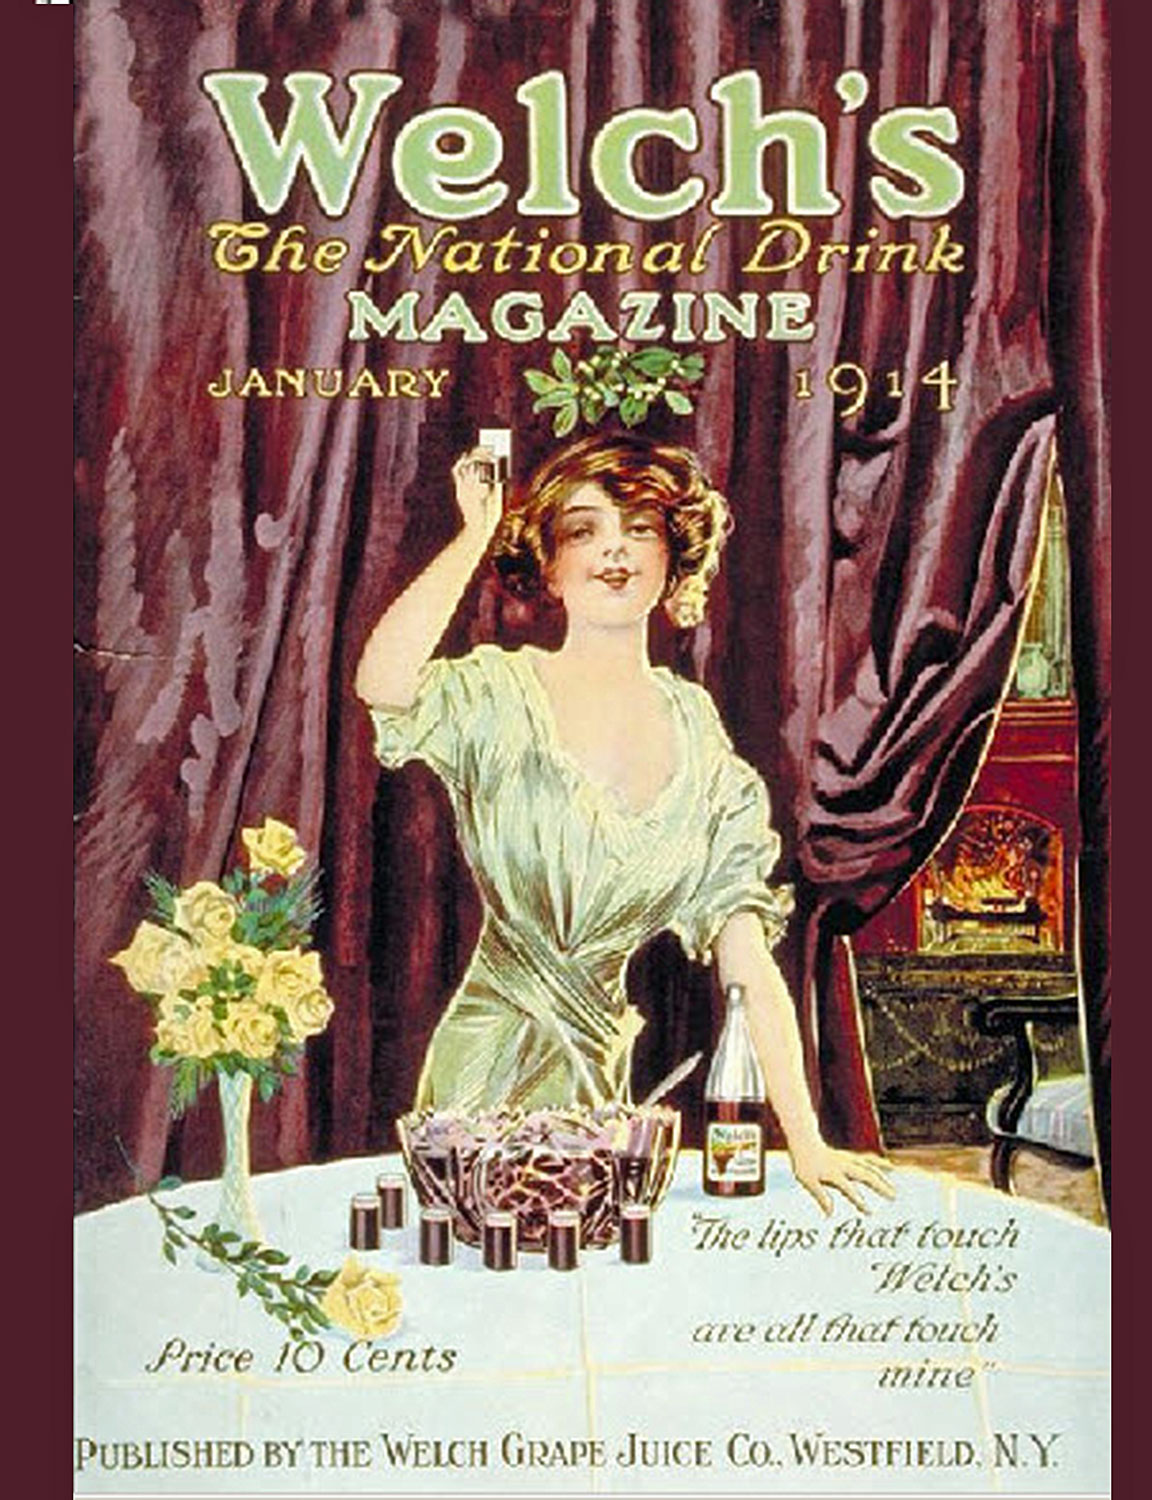 Welch's magazine cover from 1914.